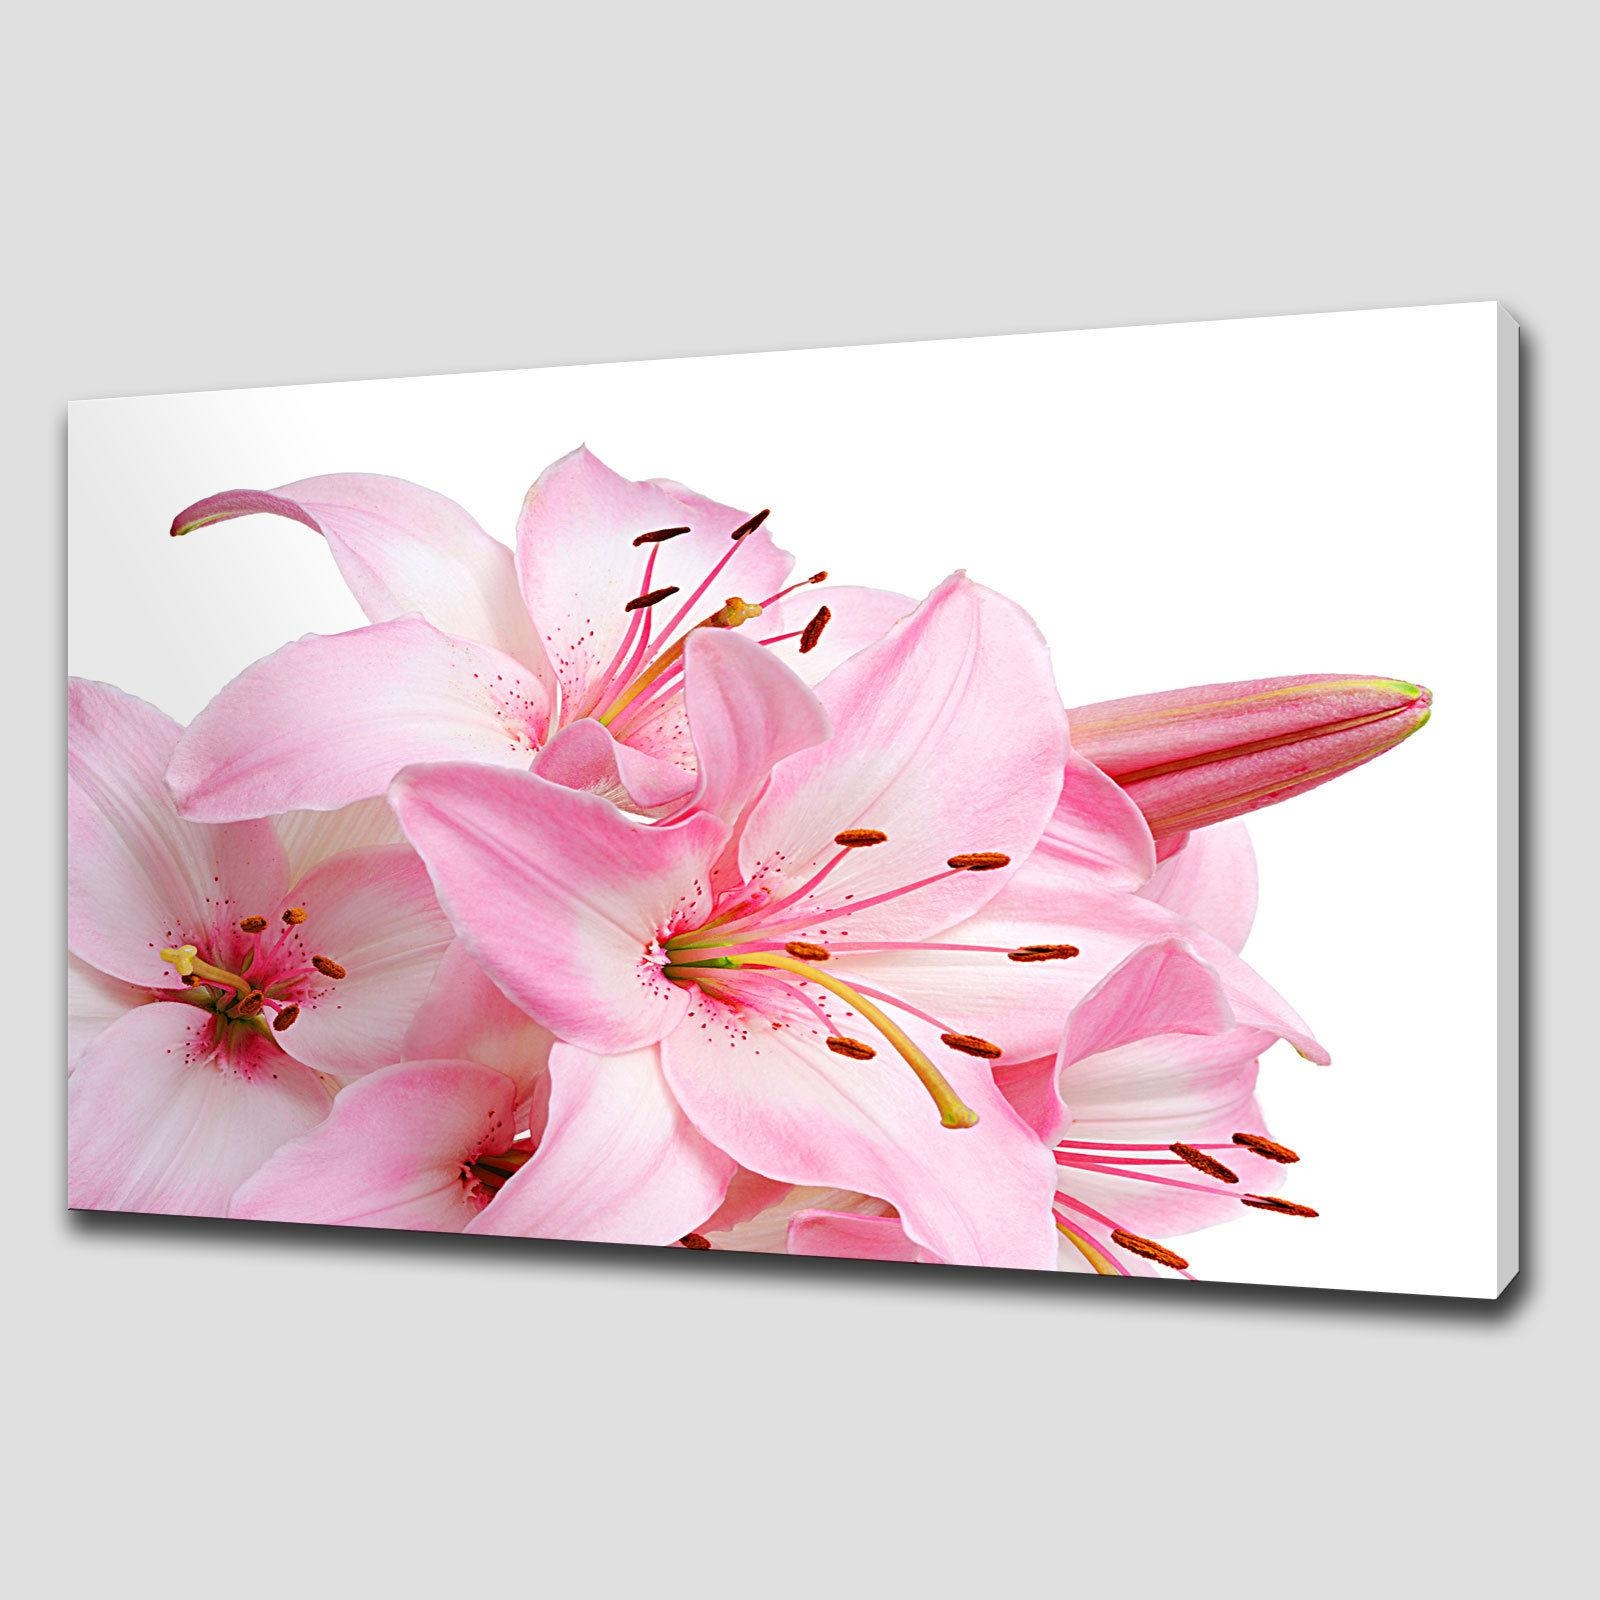 Wall Art Designs: Canvas Floral Wall Art Flowers Paintings Large In Pink Flower Wall Art (Image 16 of 20)